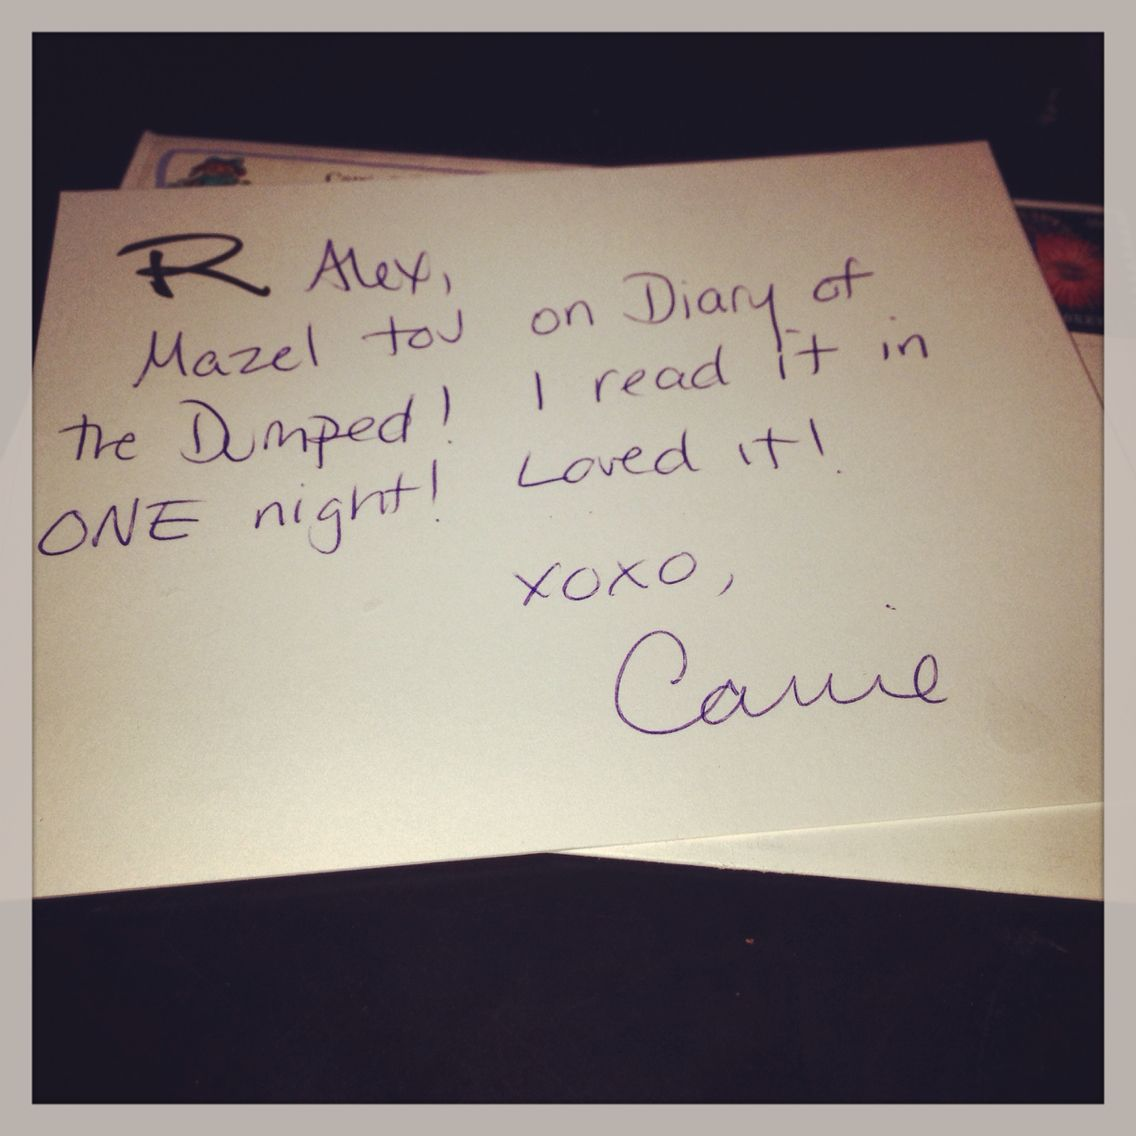 """Alex, Mazel Tov on #DiaryOfTheDumped. I read it in ONE night."" XOXO, Carrie   Loved receiving this beautiful hand written note from a loyal reader & good friend!"